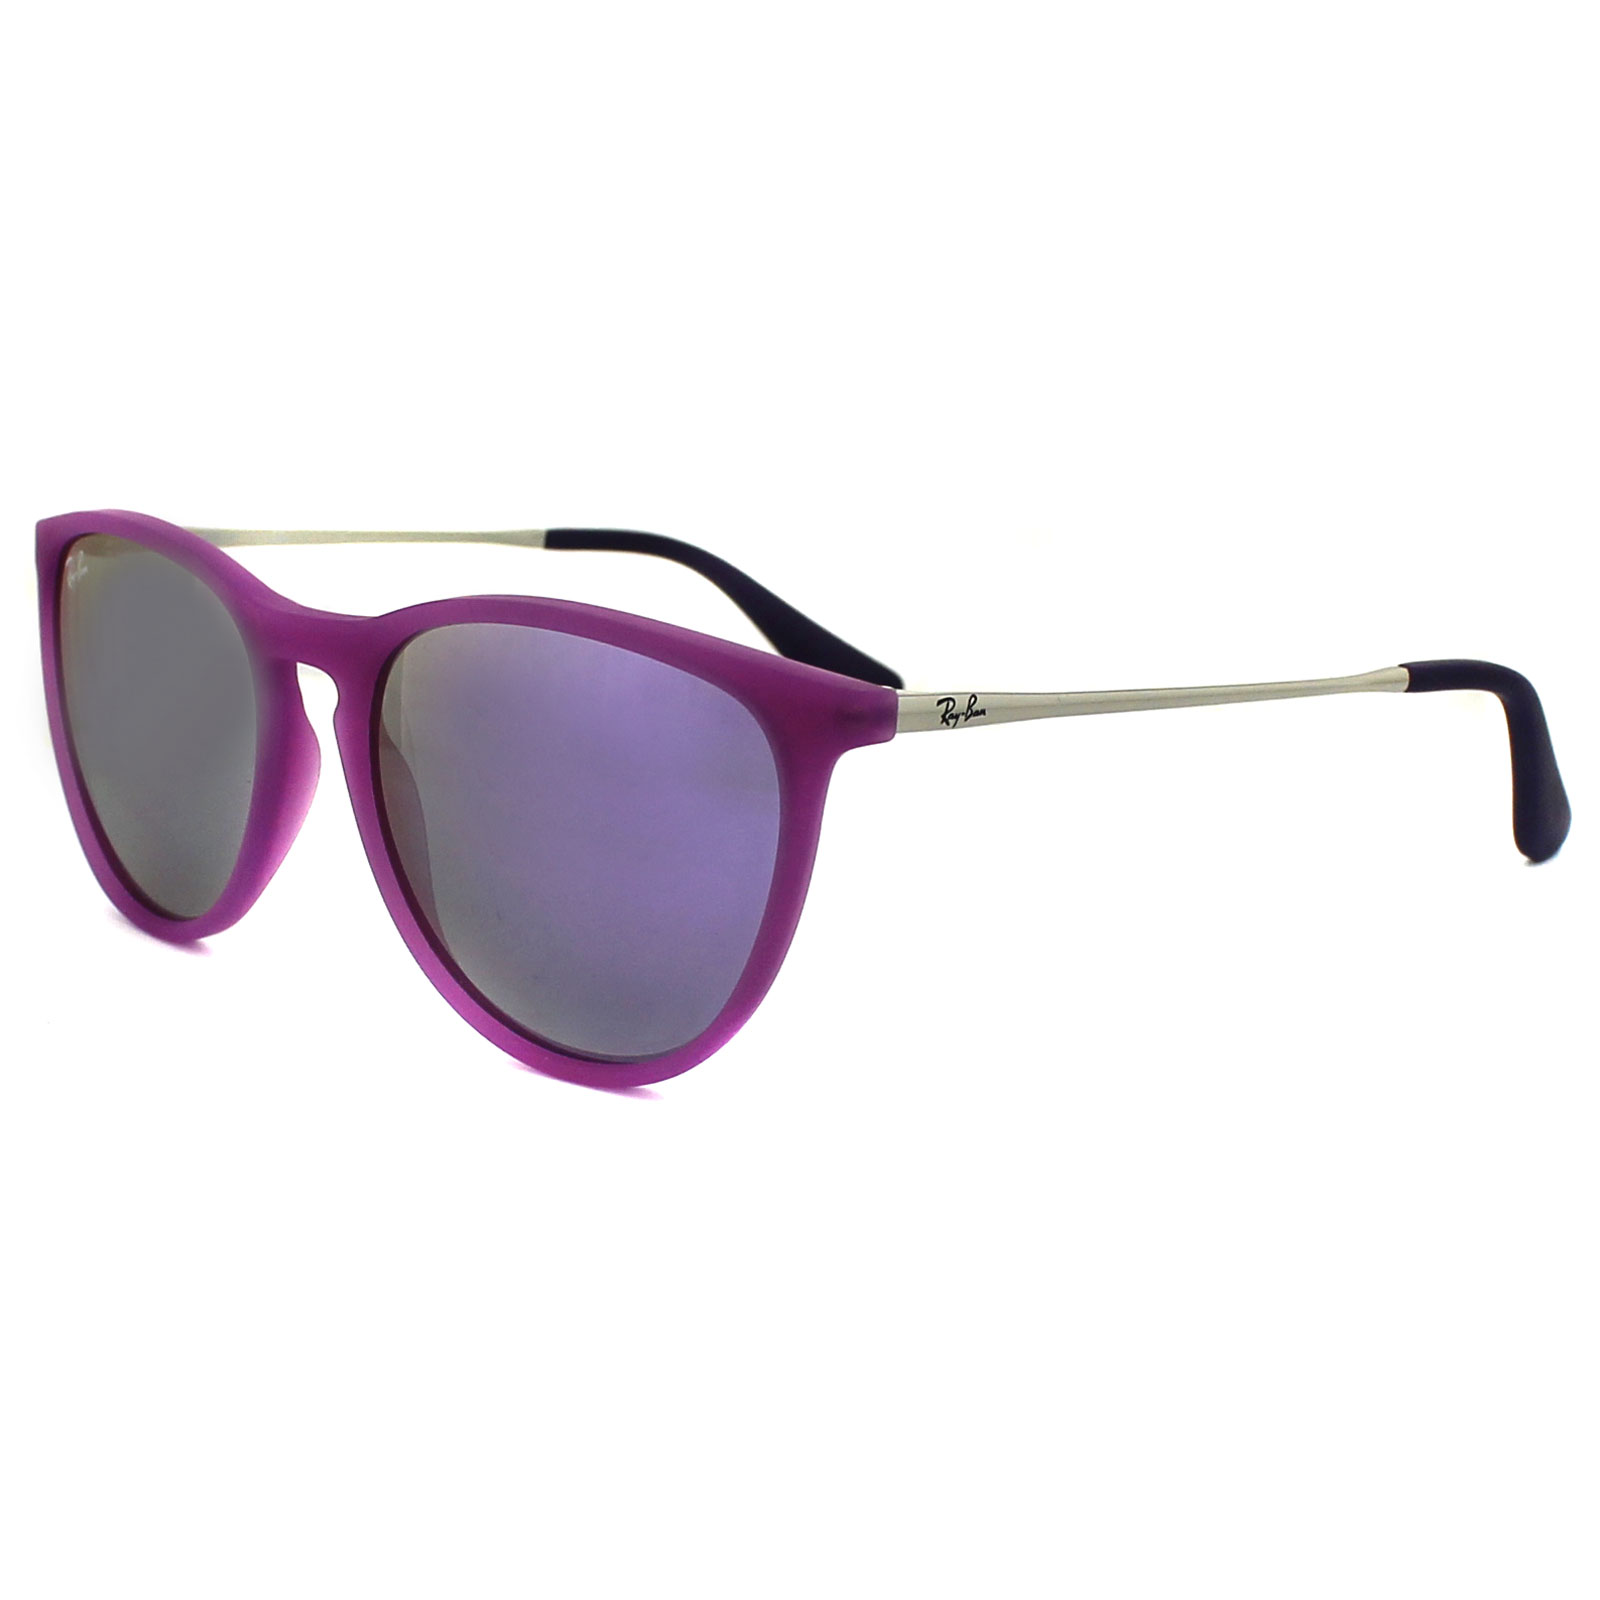 Kids Ray Ban Sunglasses  ray ban junior sunglasses izzy 9060 70084v rubber violet violet mirror